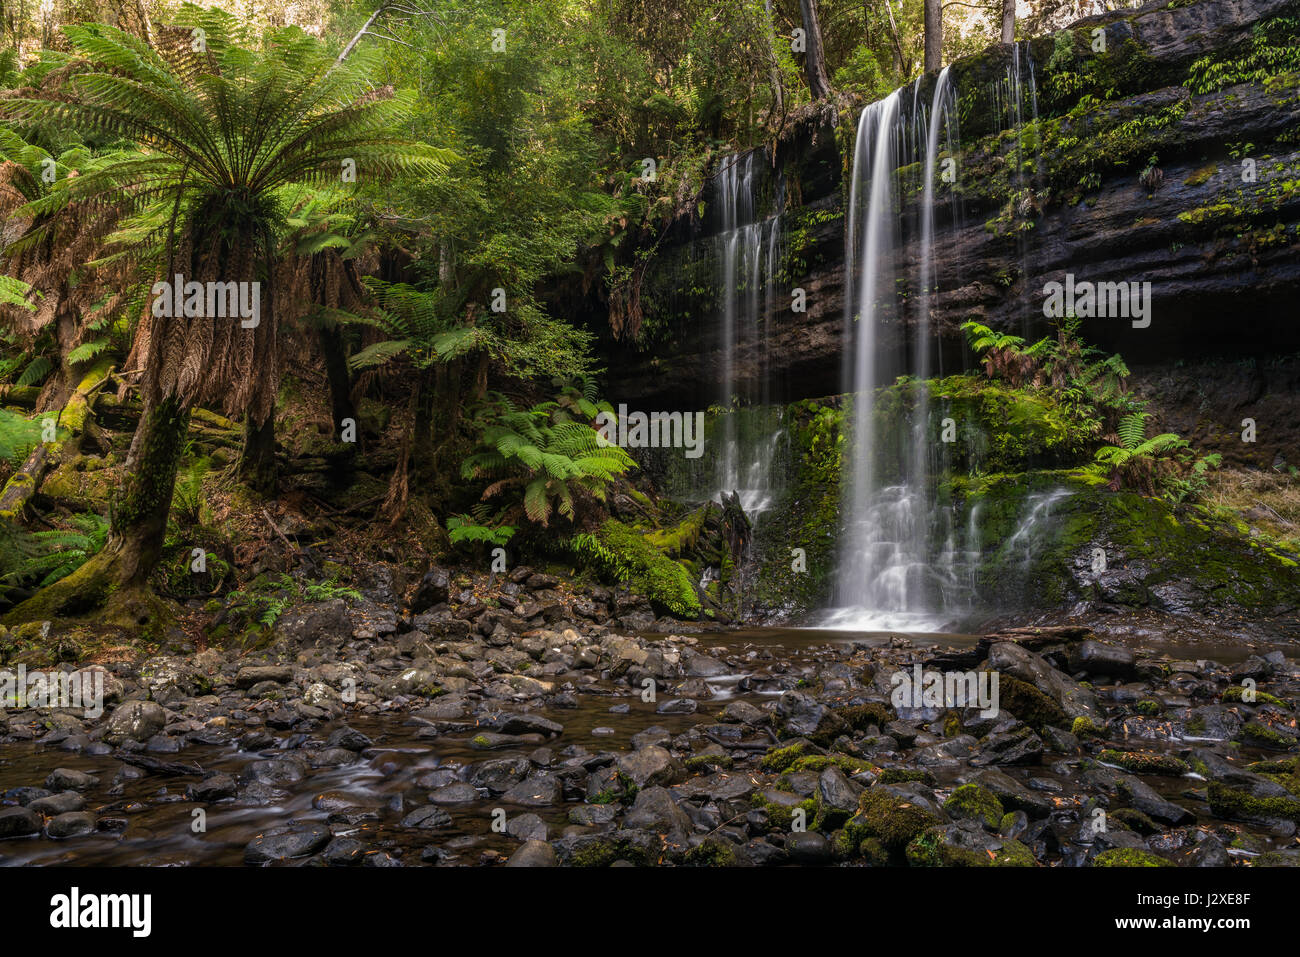 Long exposure of a waterfall, with a silky look, surrounded by lush vegetation and rocks covered with moss. - Stock Image